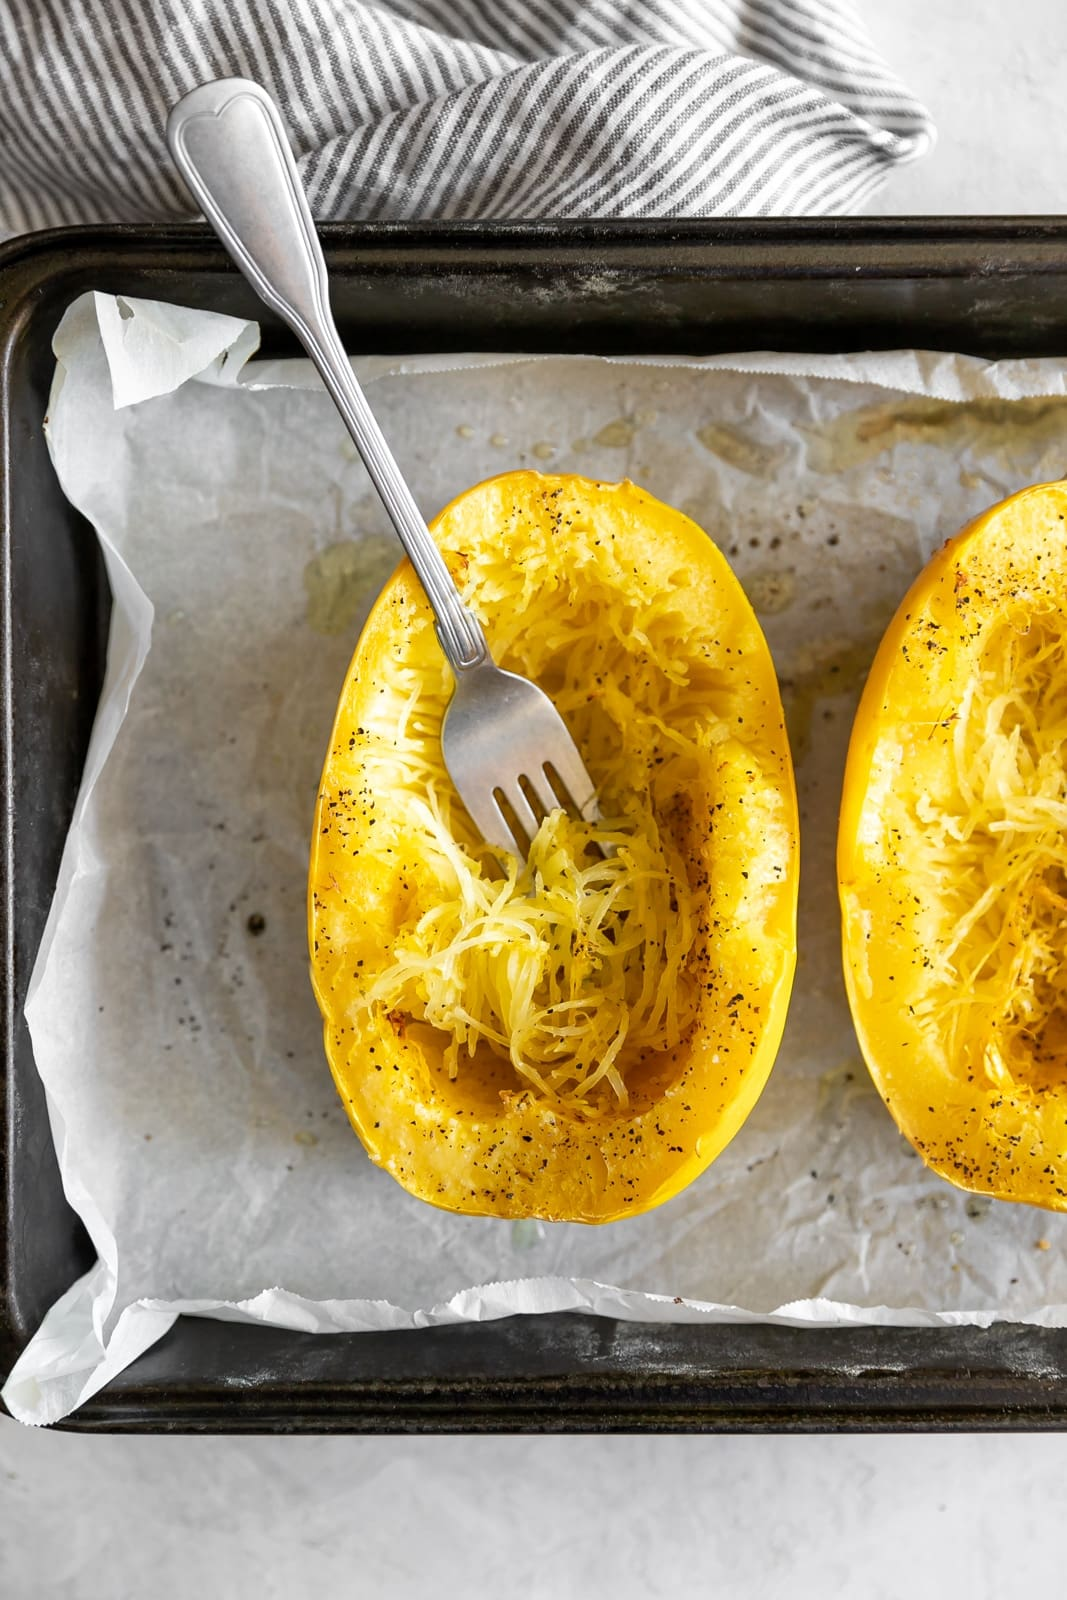 A spaghetti squash cut lengthwise on a baking dish with a fork shredded into spaghetti